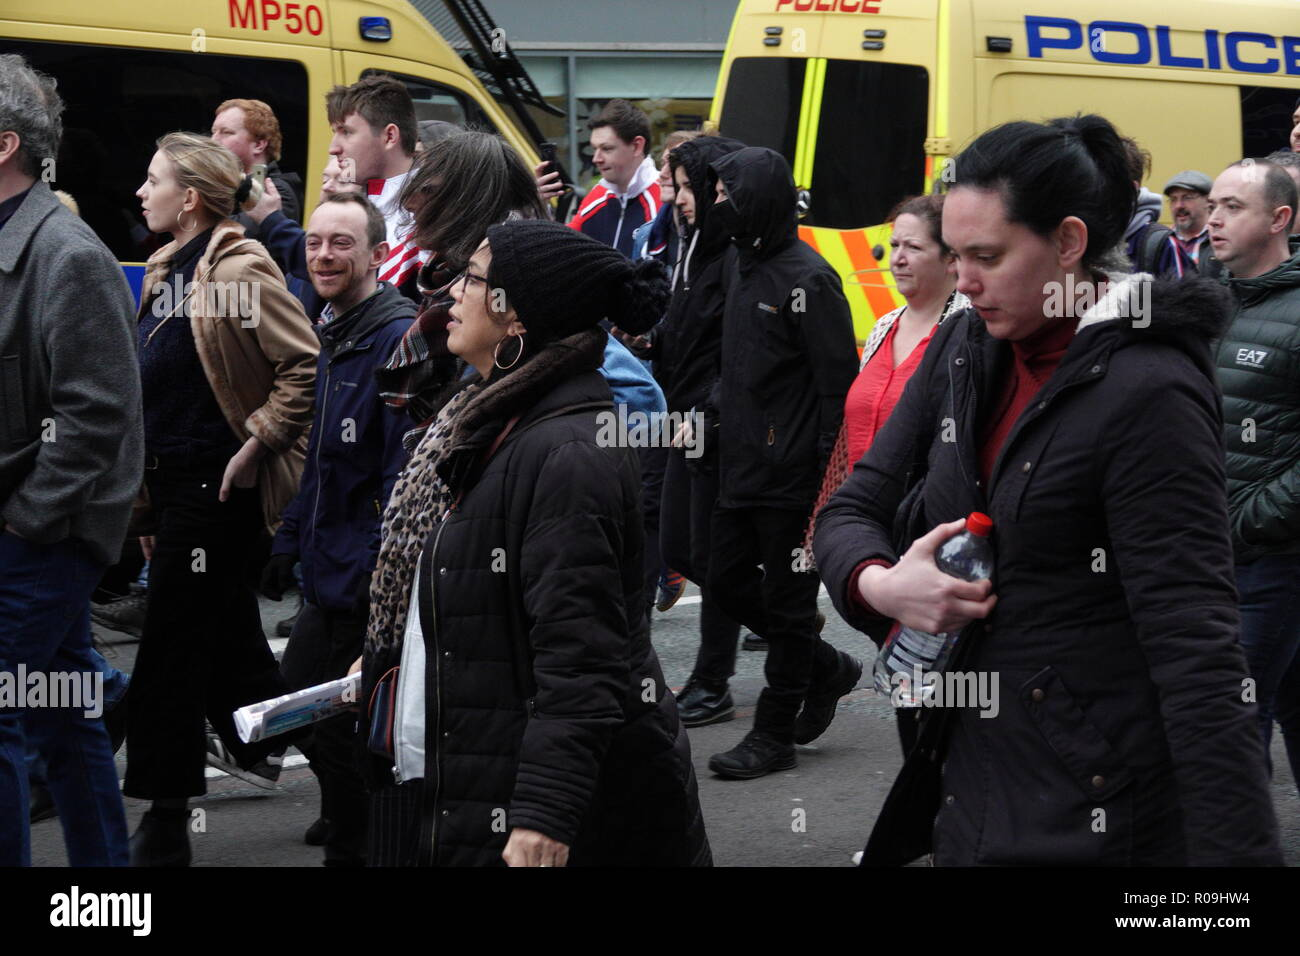 Liverpool, UK. 3rd November 2018.  The Fascist group 'Frontline Patriots' attempt to march through the streets of Liverpool but are met with powerful protest in response by members of the public and groups such as 'Stand up to Racism' and 'Unite against Fascism'. Credit: Ken Biggs/Alamy Live News. - Stock Image